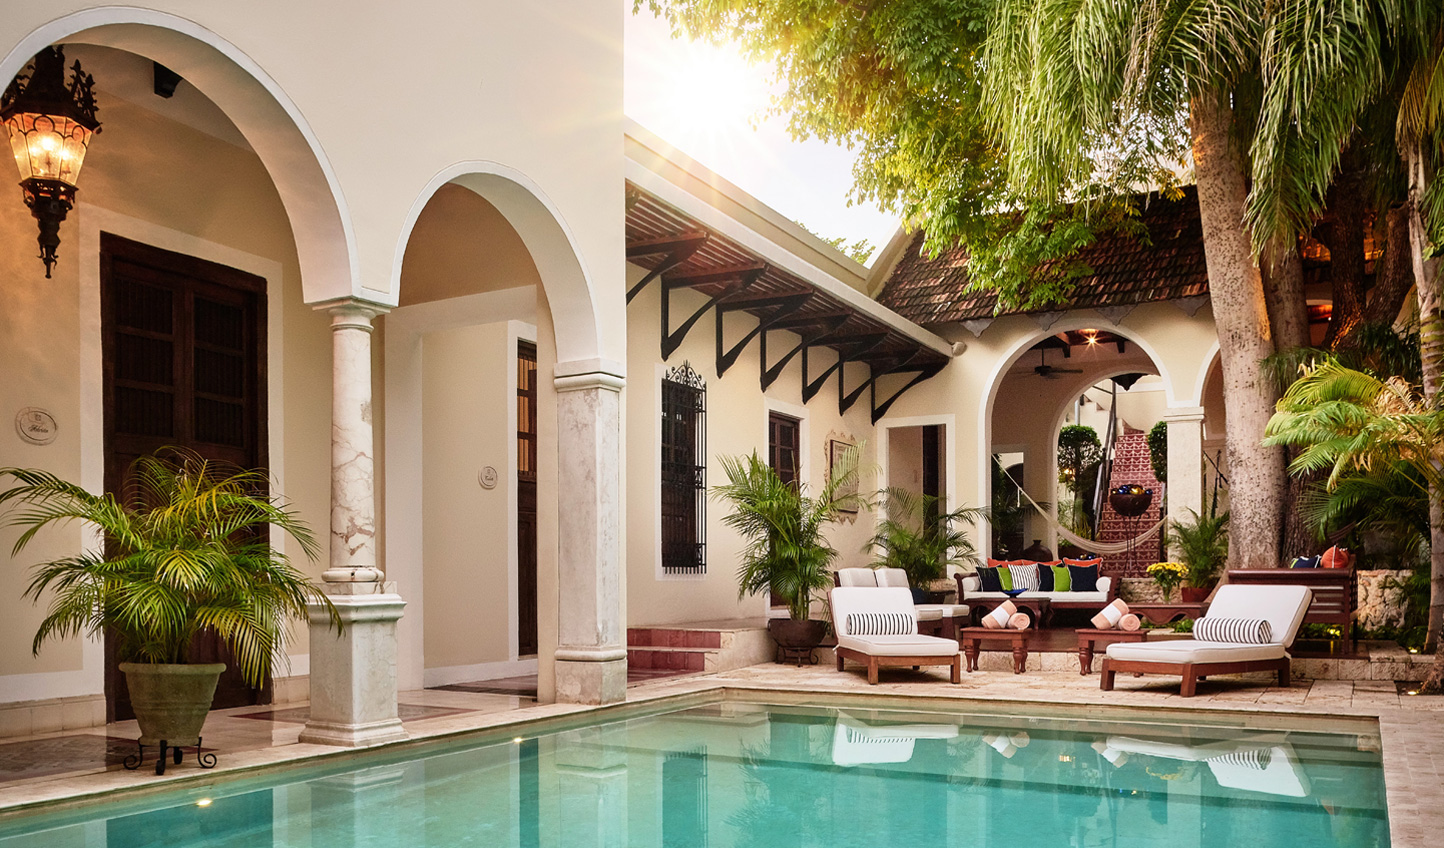 Casa Lecanda, Merida | Luxury Hotels in Mexico